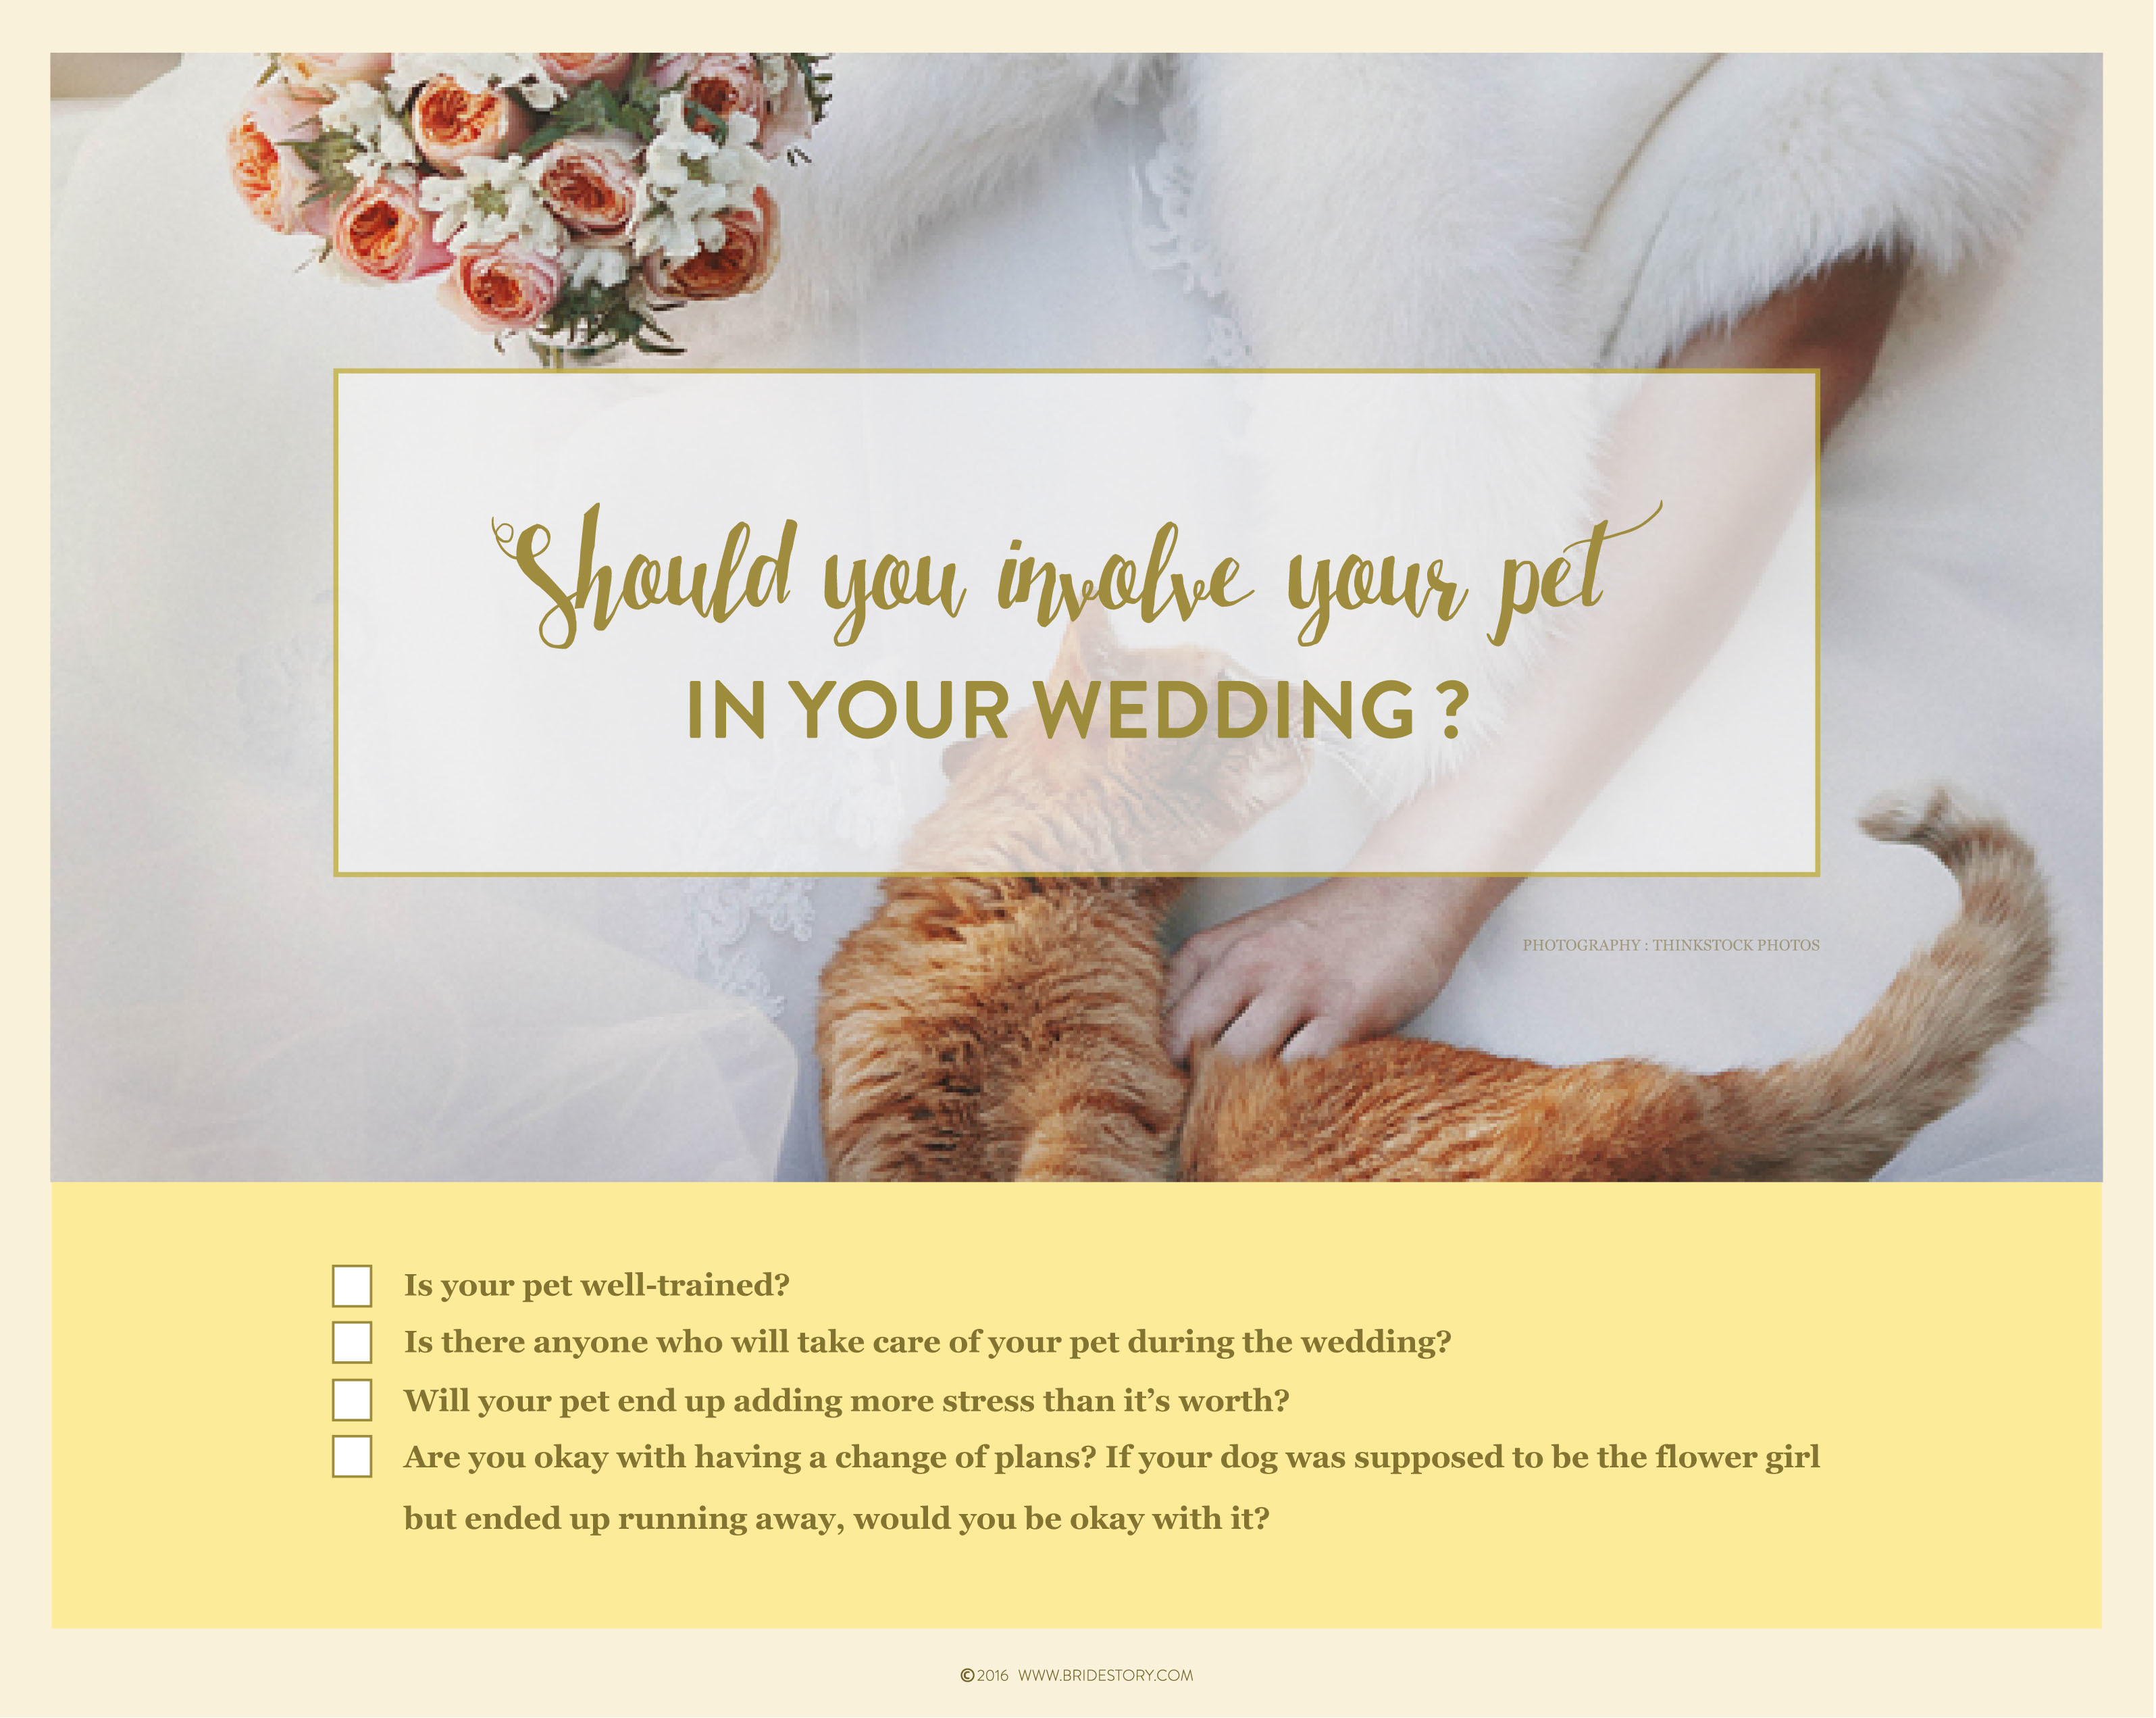 How to Involve Pets in Your Wedding Image 3